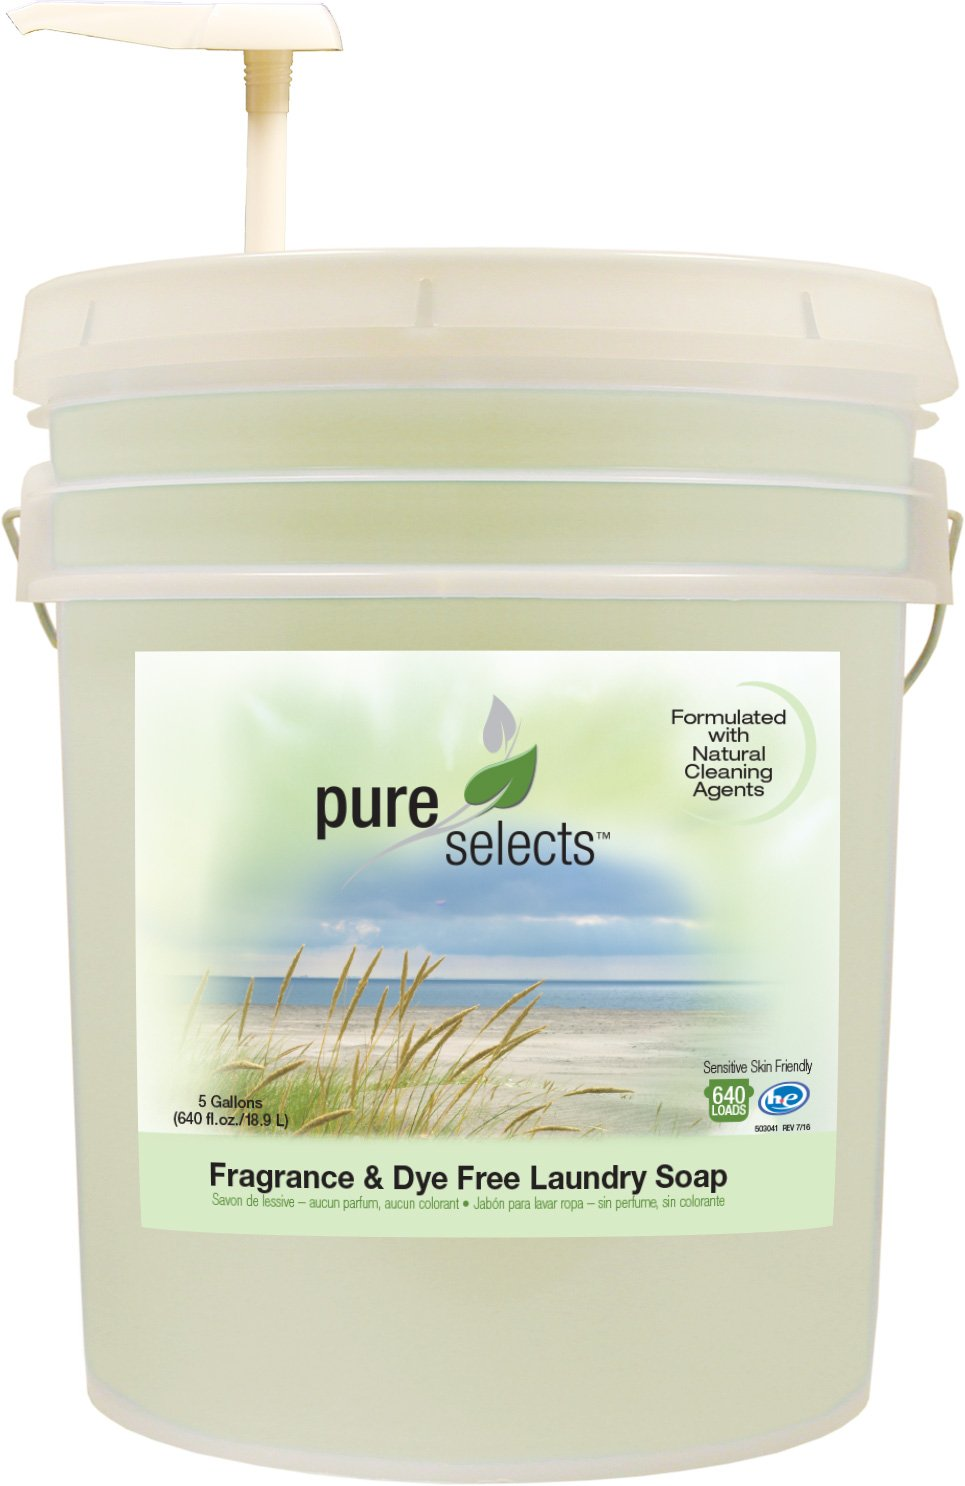 Pure Selects Fragrance & Dye Free Laundry Soap • All Natural • HE • 640 Loads • Sensitive Skin Friendly • 5 Gallons •NO ANIMAL TESTING • PUMP INCLUDED